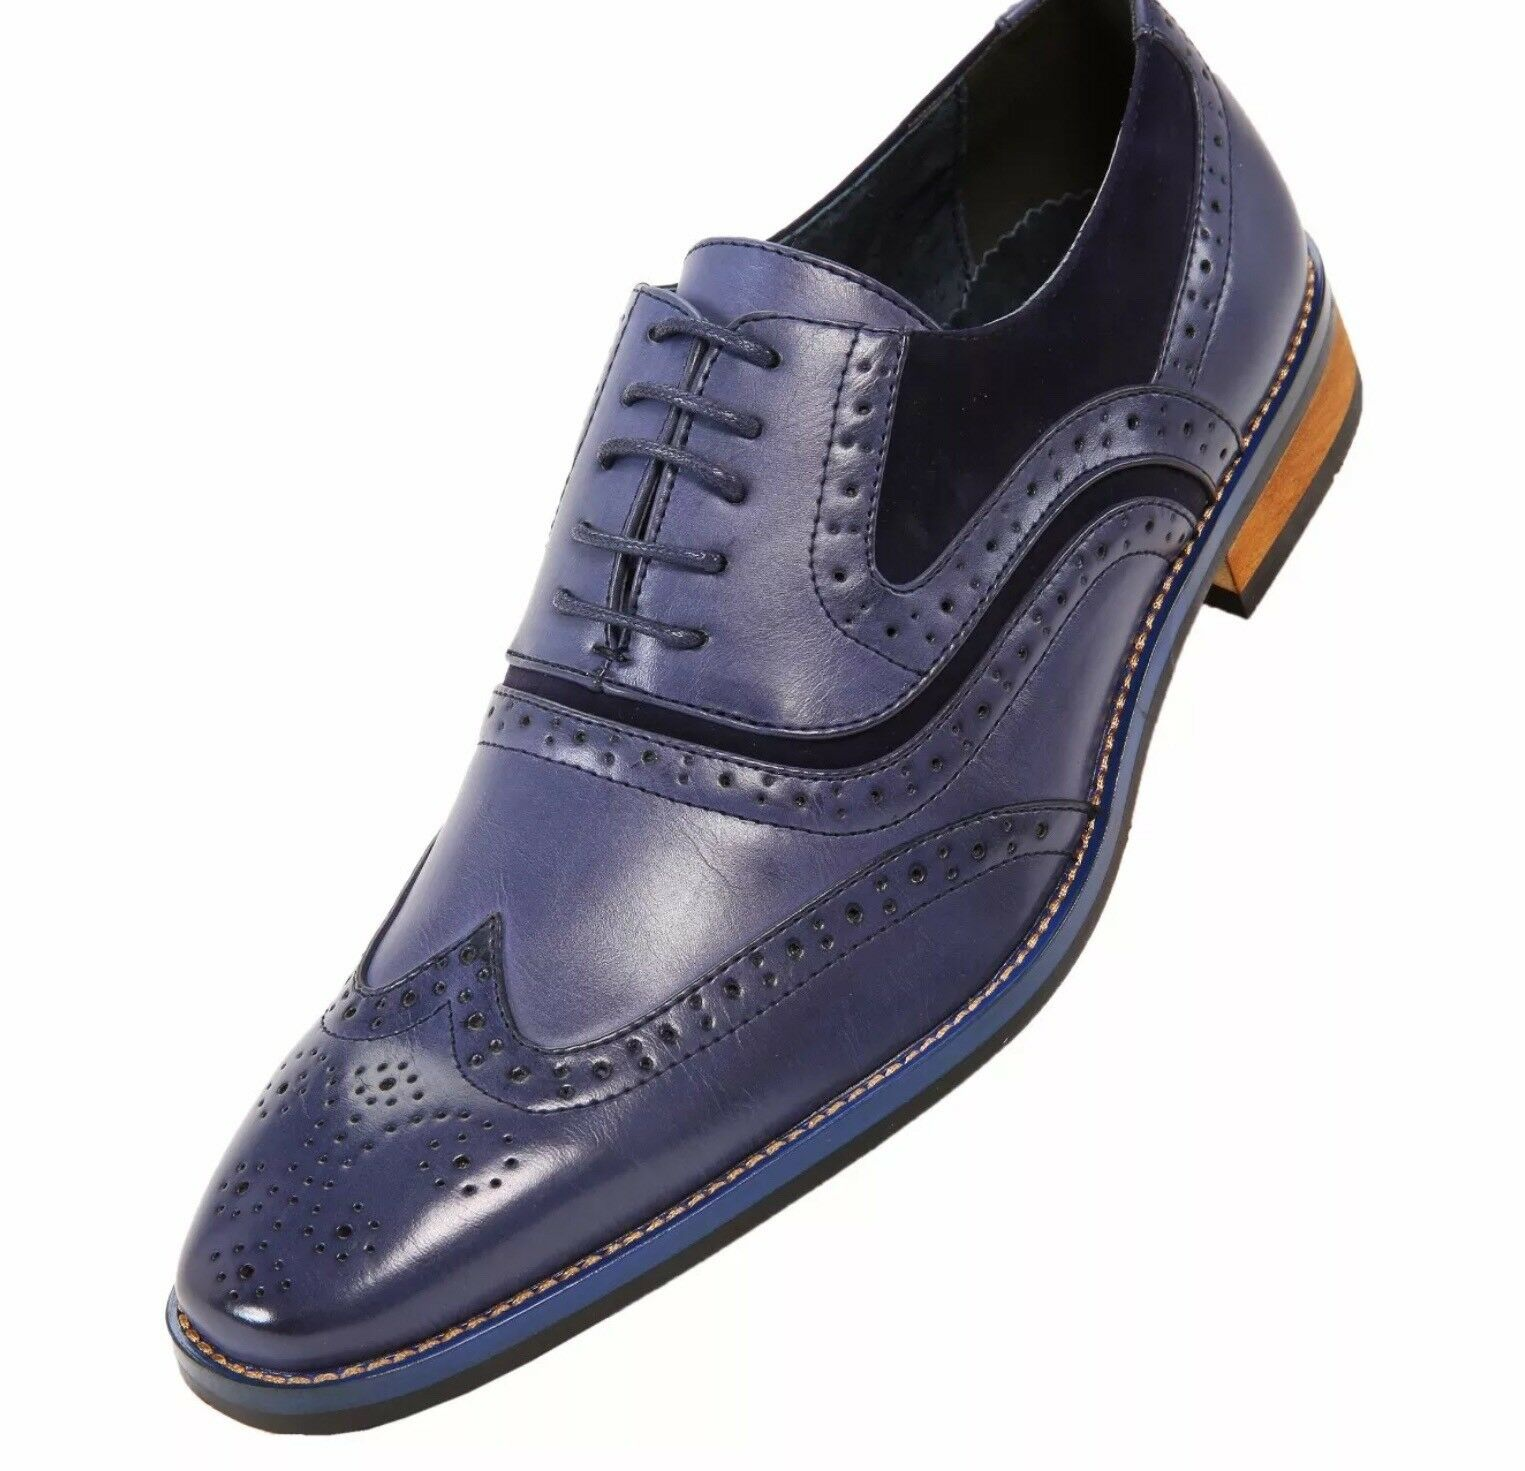 Amali Mens Classic bluee Smooth Man-made Microfiber Wingtip Oxford Dress shoesNEW